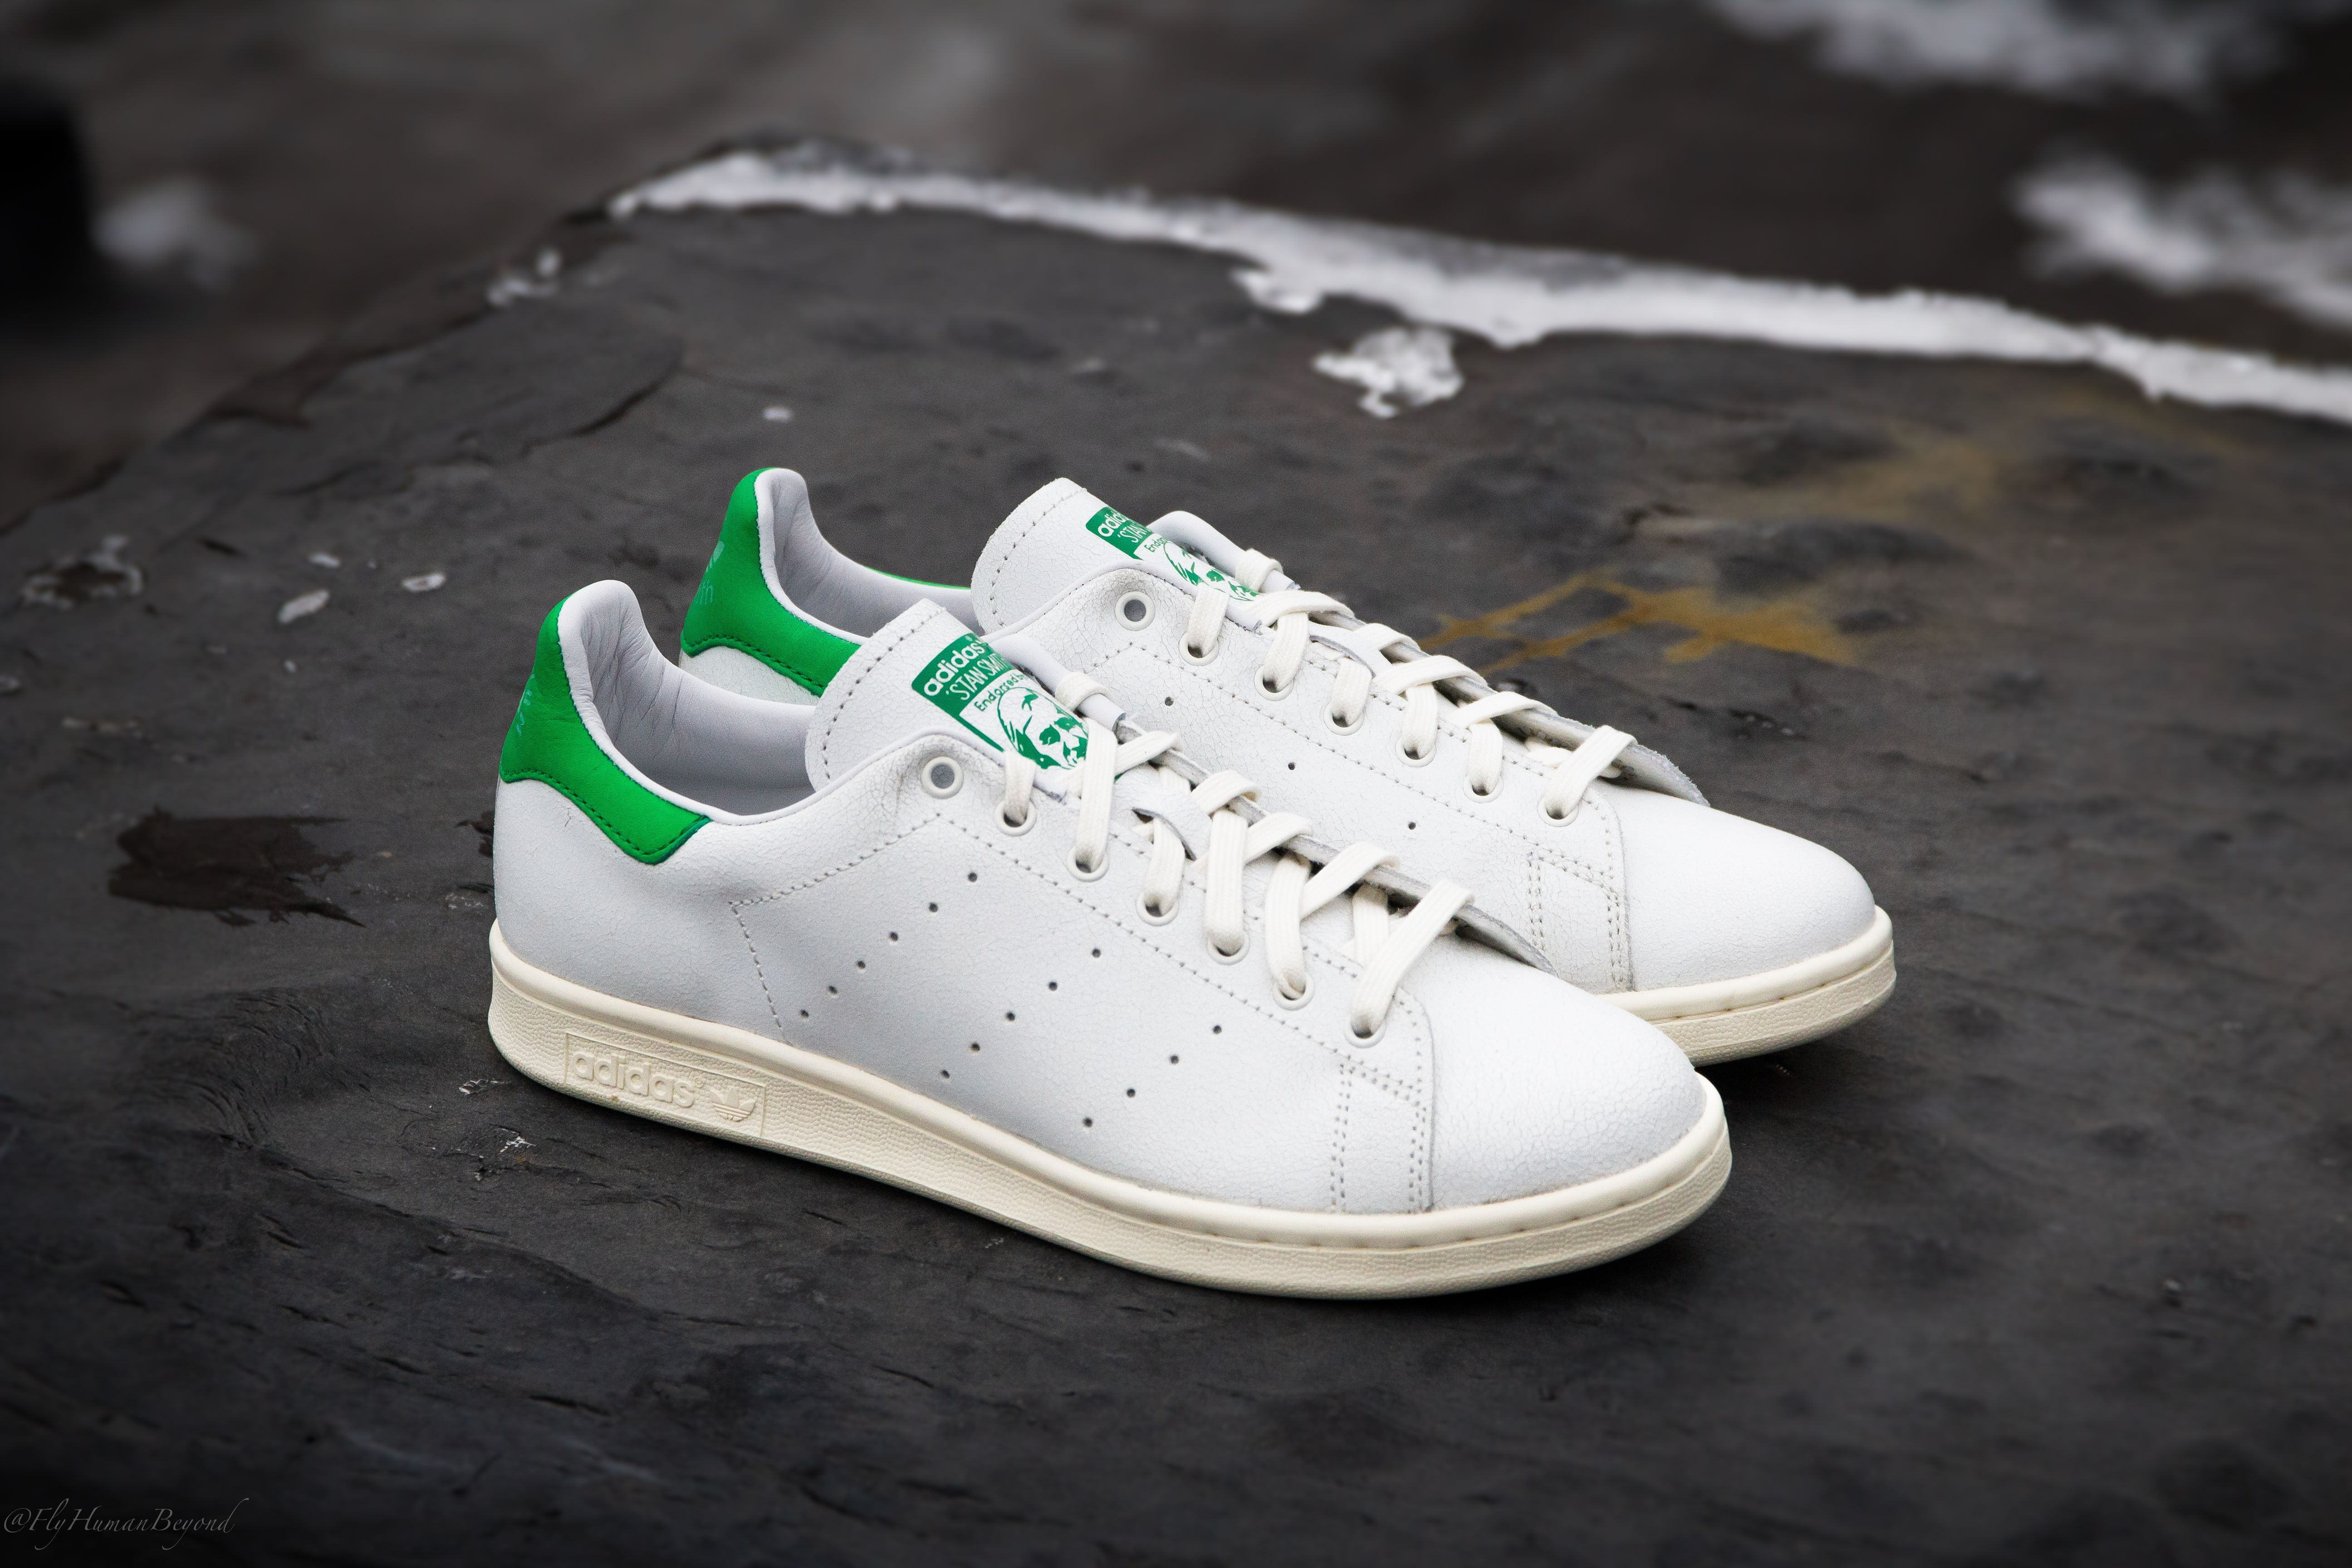 ADIDAS STAN SMITH - Google Search